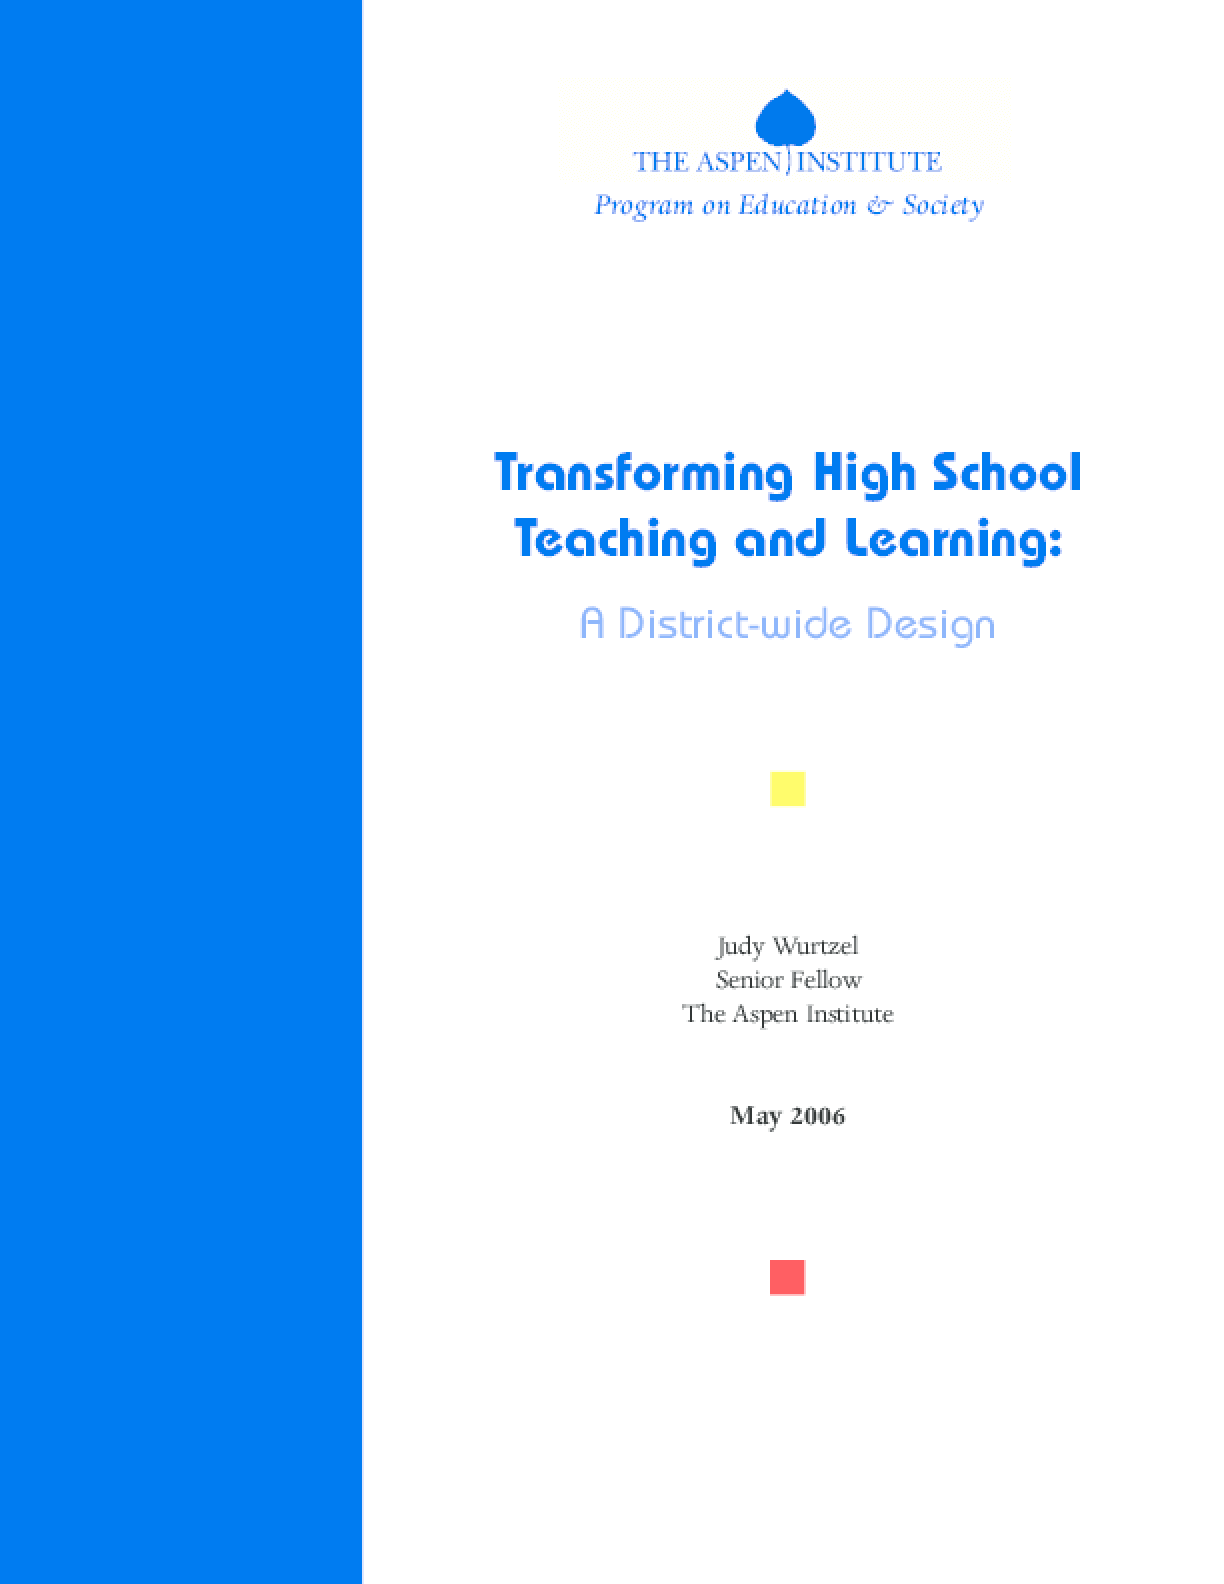 Transforming High School Teaching and Learning: A District-wide Design